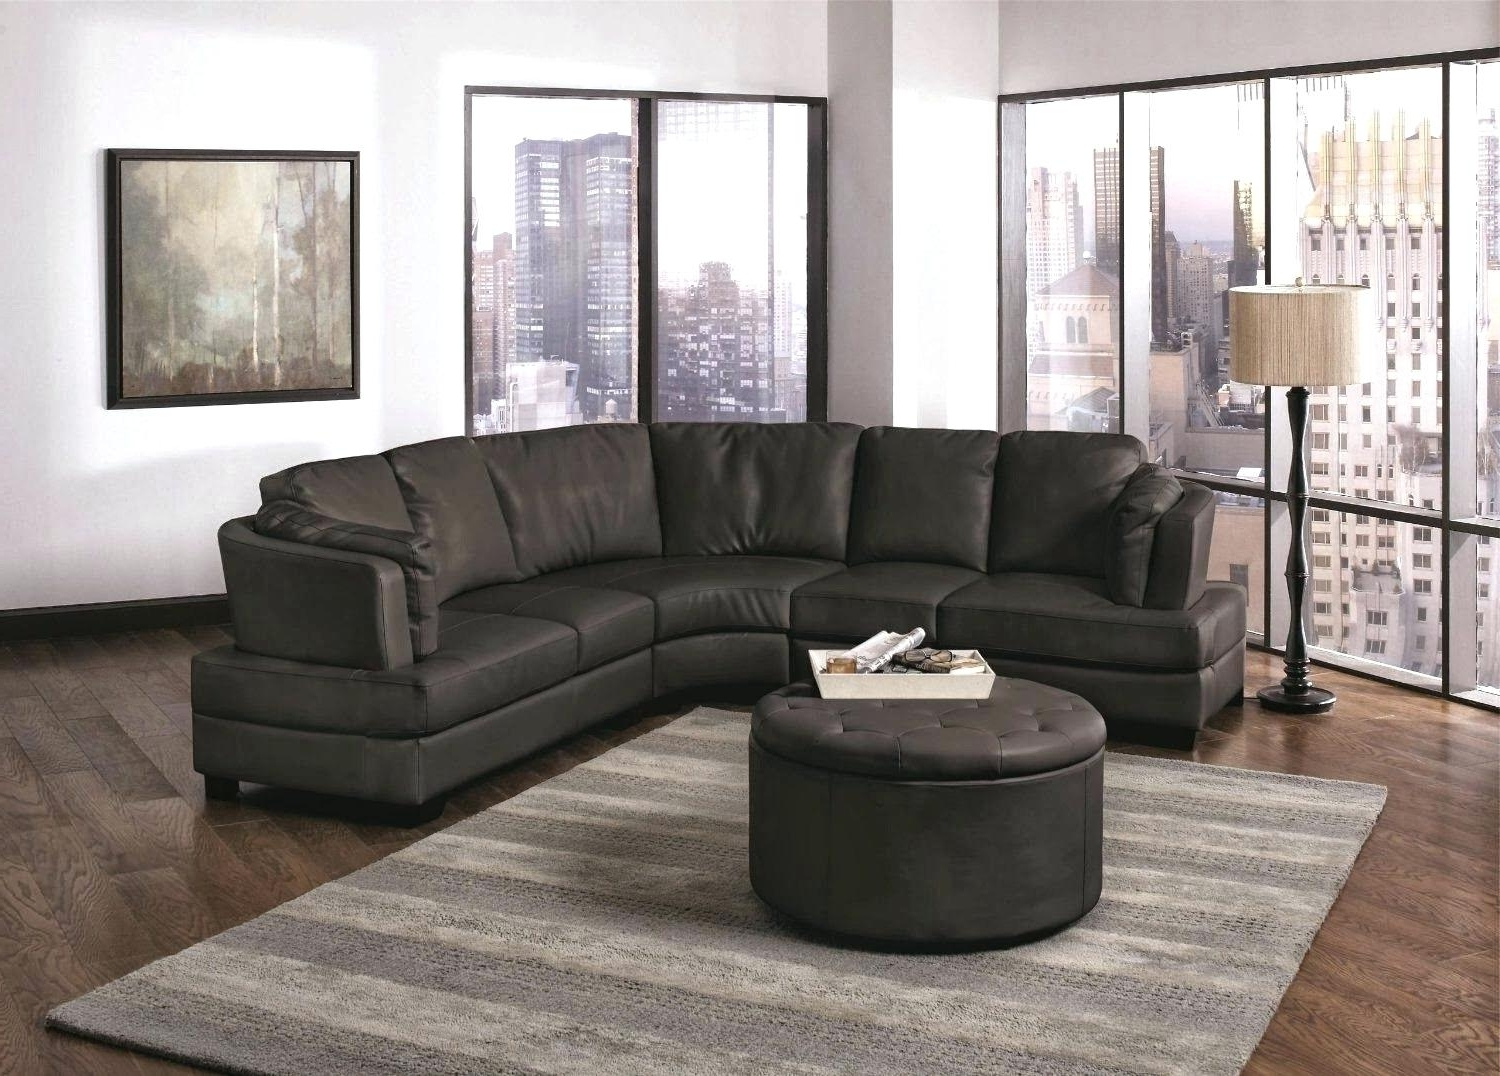 Sectional Sofa Sale What Liquidation Toronto London Ontario Inside Fashionable London Ontario Sectional Sofas (View 10 of 15)